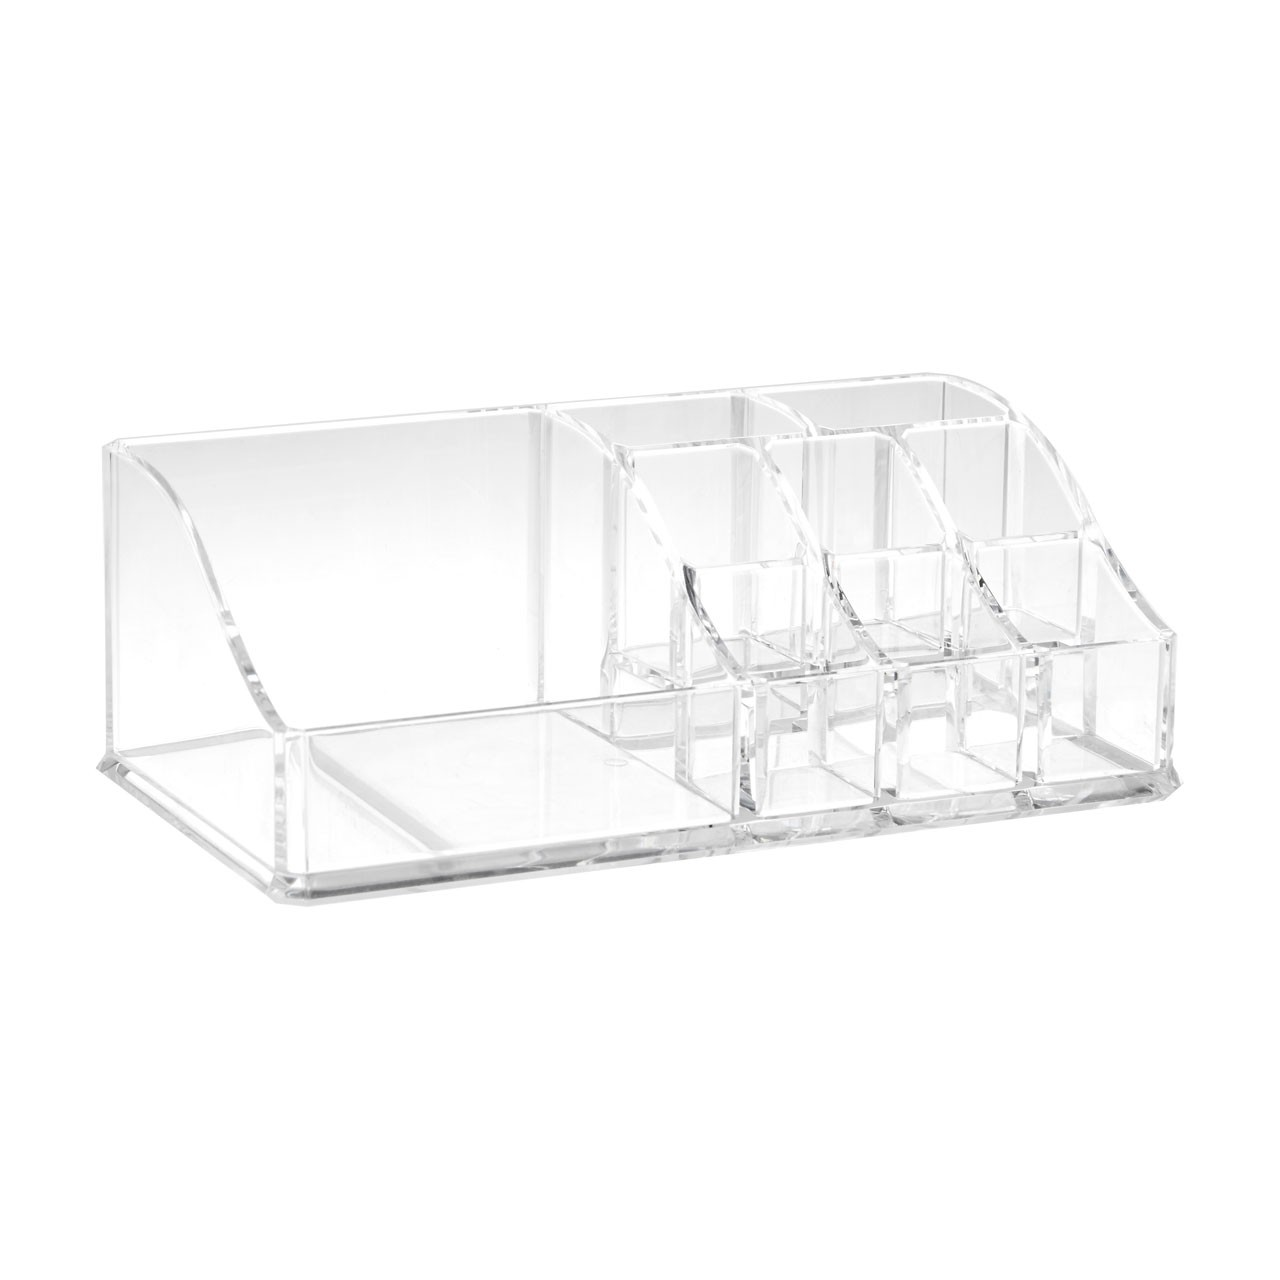 Prime Furnishing 9 Compartment Cosmetics Organiser - Clear